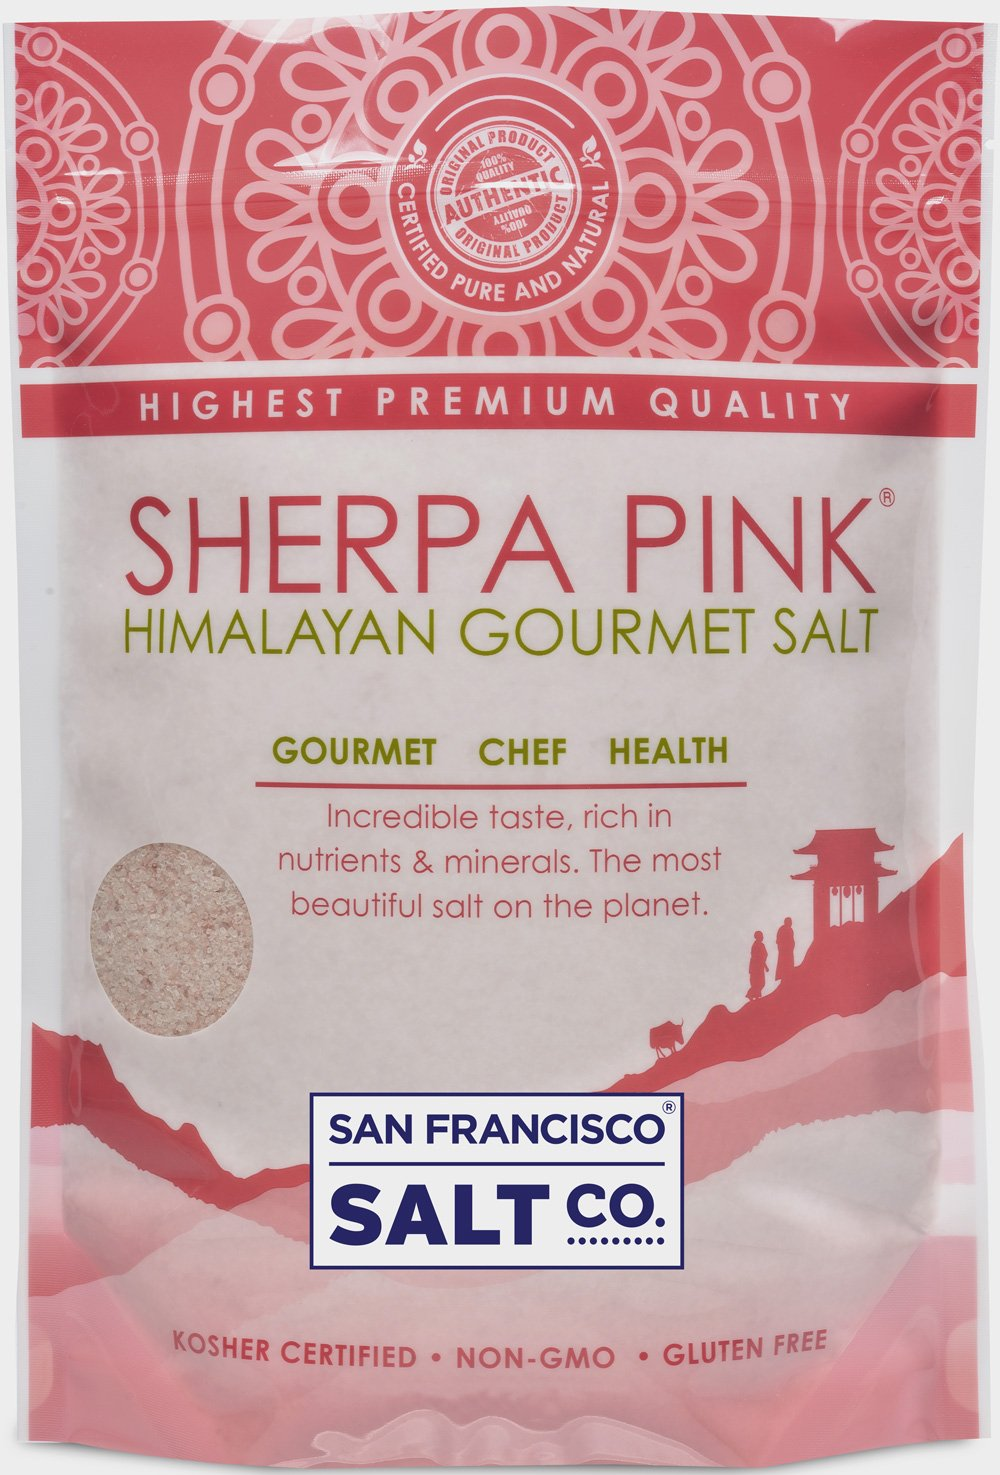 Sherpa Pink Gourmet Himalayan Salt, 5lbs Fine Grain. Incredible Taste. Rich in Nutrients and Minerals To Improve Your Health. Add To Your Cart Today. …